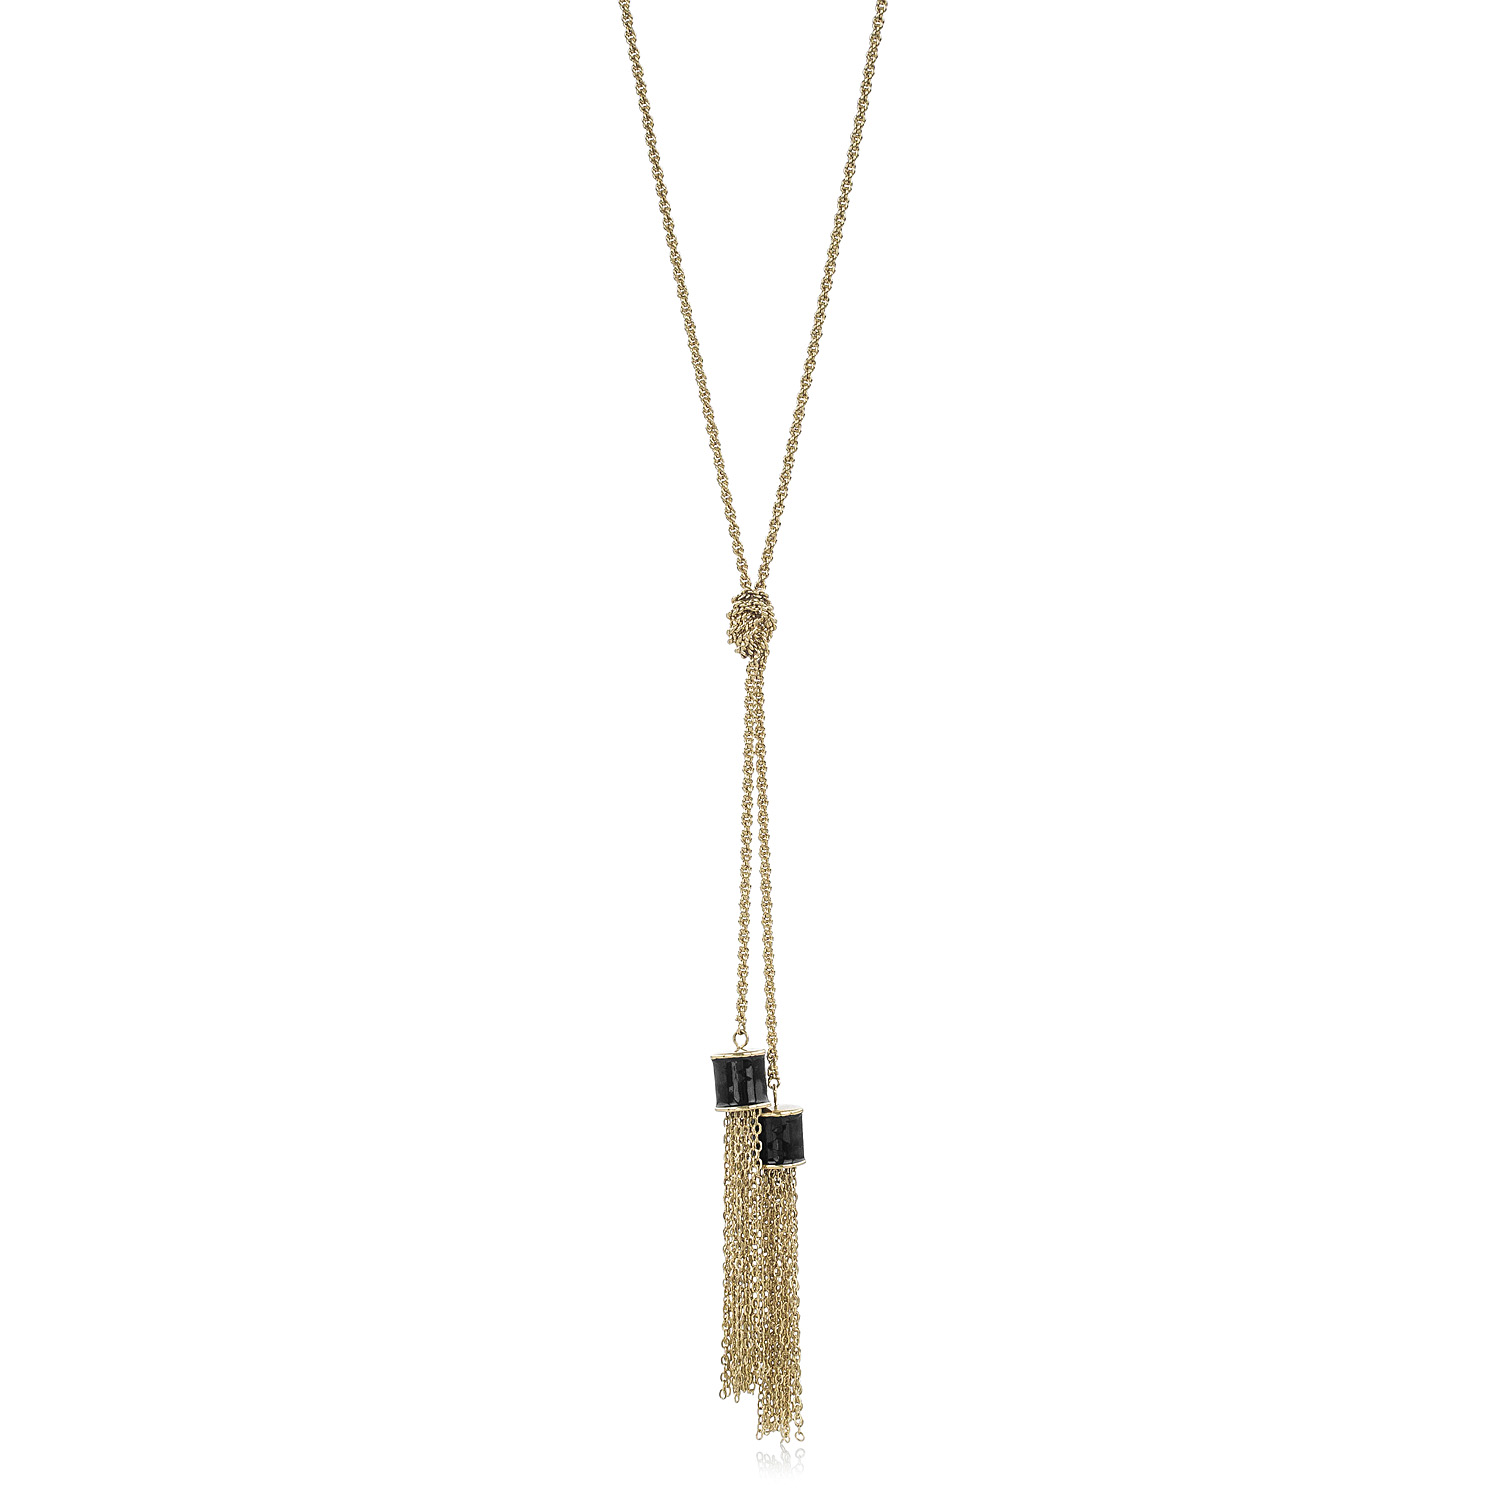 Fairhaven Duo Tassel Necklace Black Jewelry